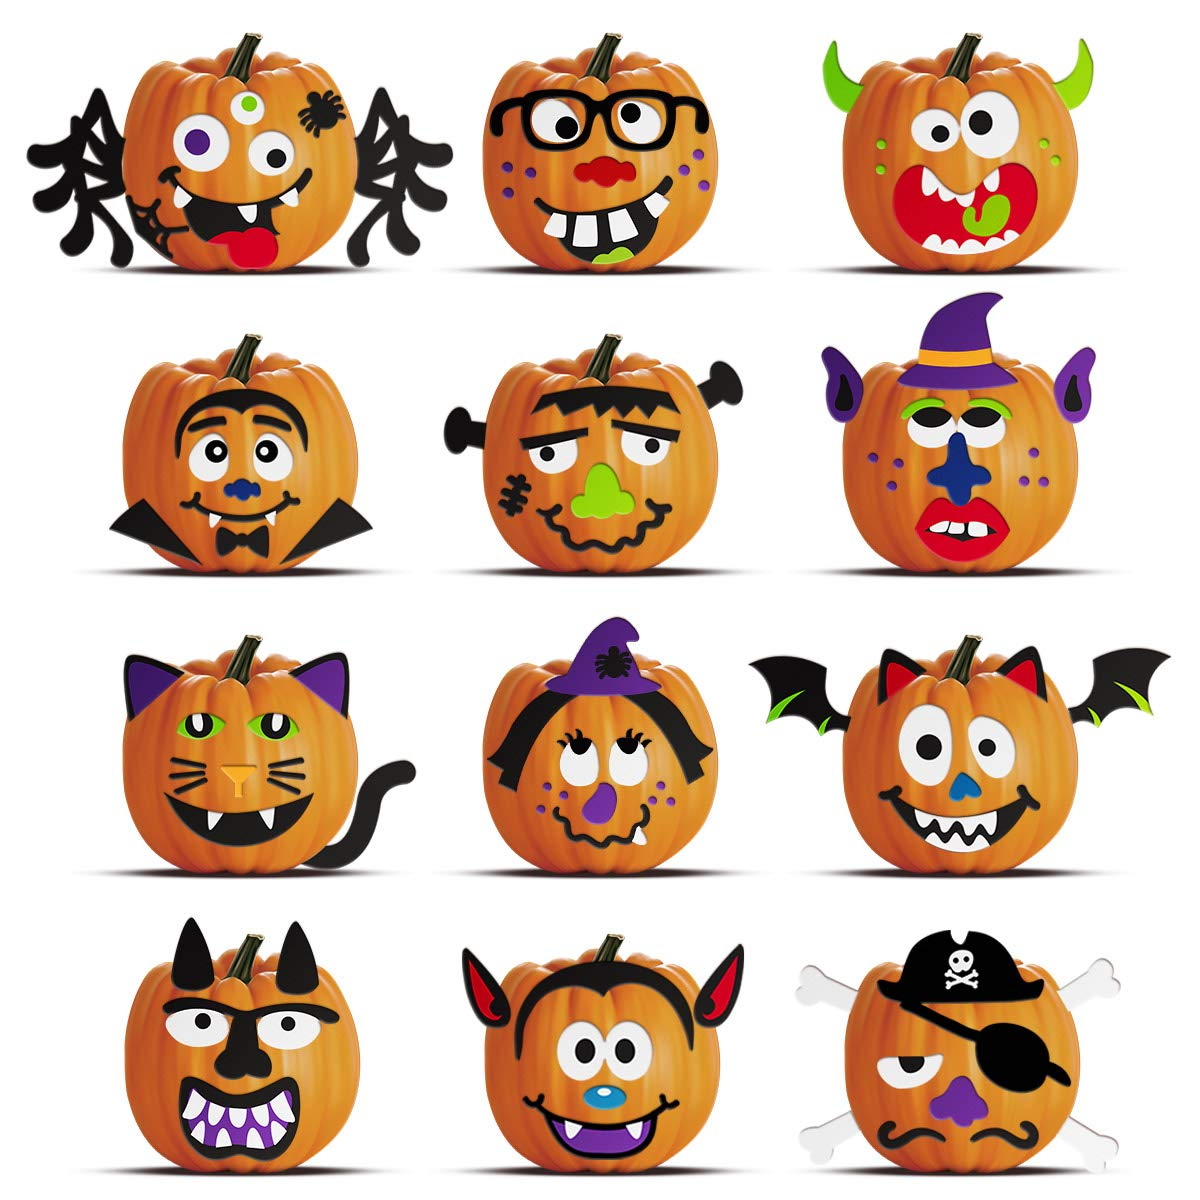 Unomor Halloween Pumpkin Decorating Craft Kit Stickers - Makes 24 Pumpkins (12 Designs with 2 Sizes & 30 Wood Sticks) Halloween Party Supplies Trick or Treat Party Favors by Unomor